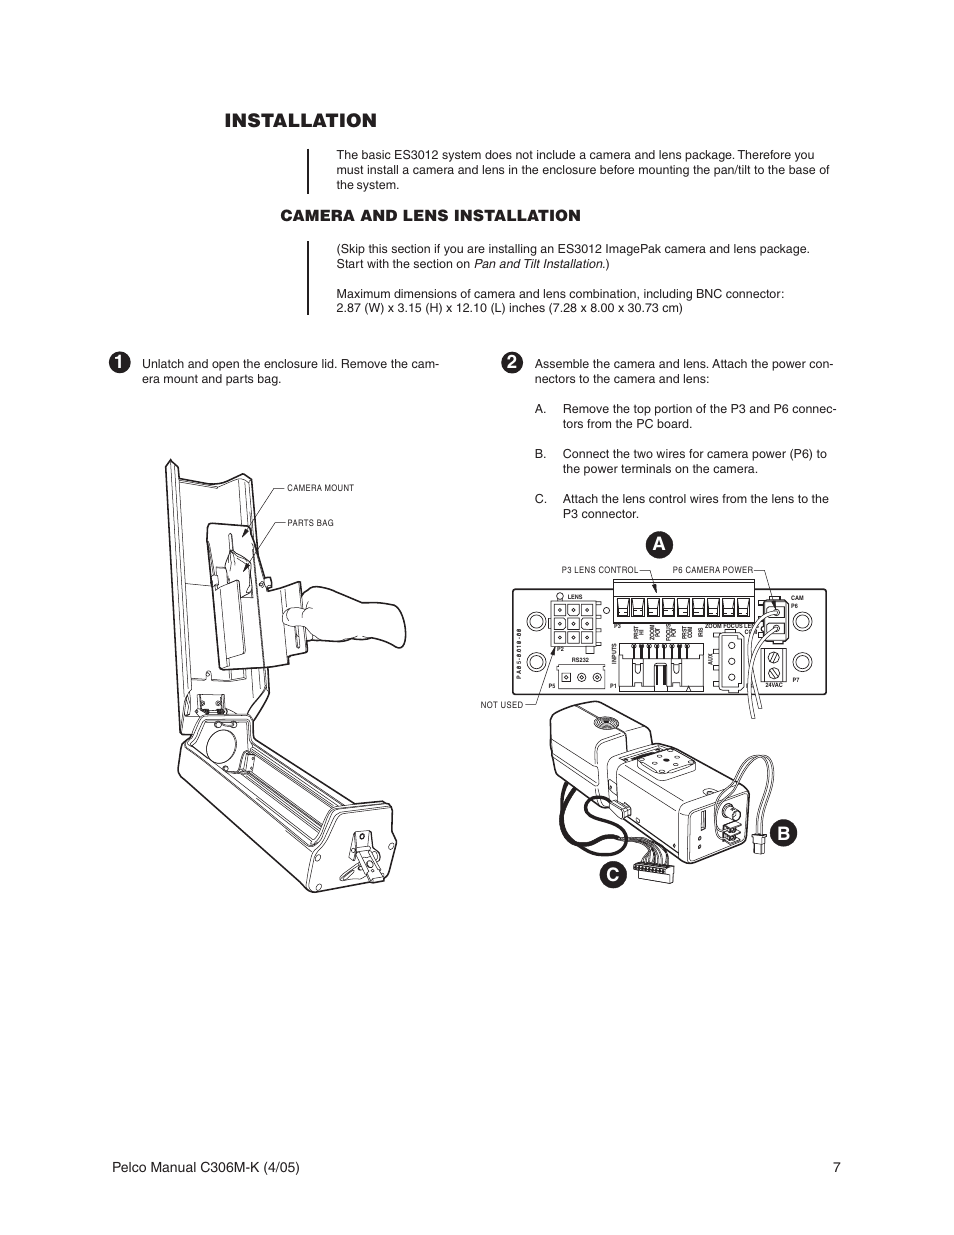 hight resolution of installation camera and lens installation ab c 1 pelco esprit es3012 user manual page 7 40